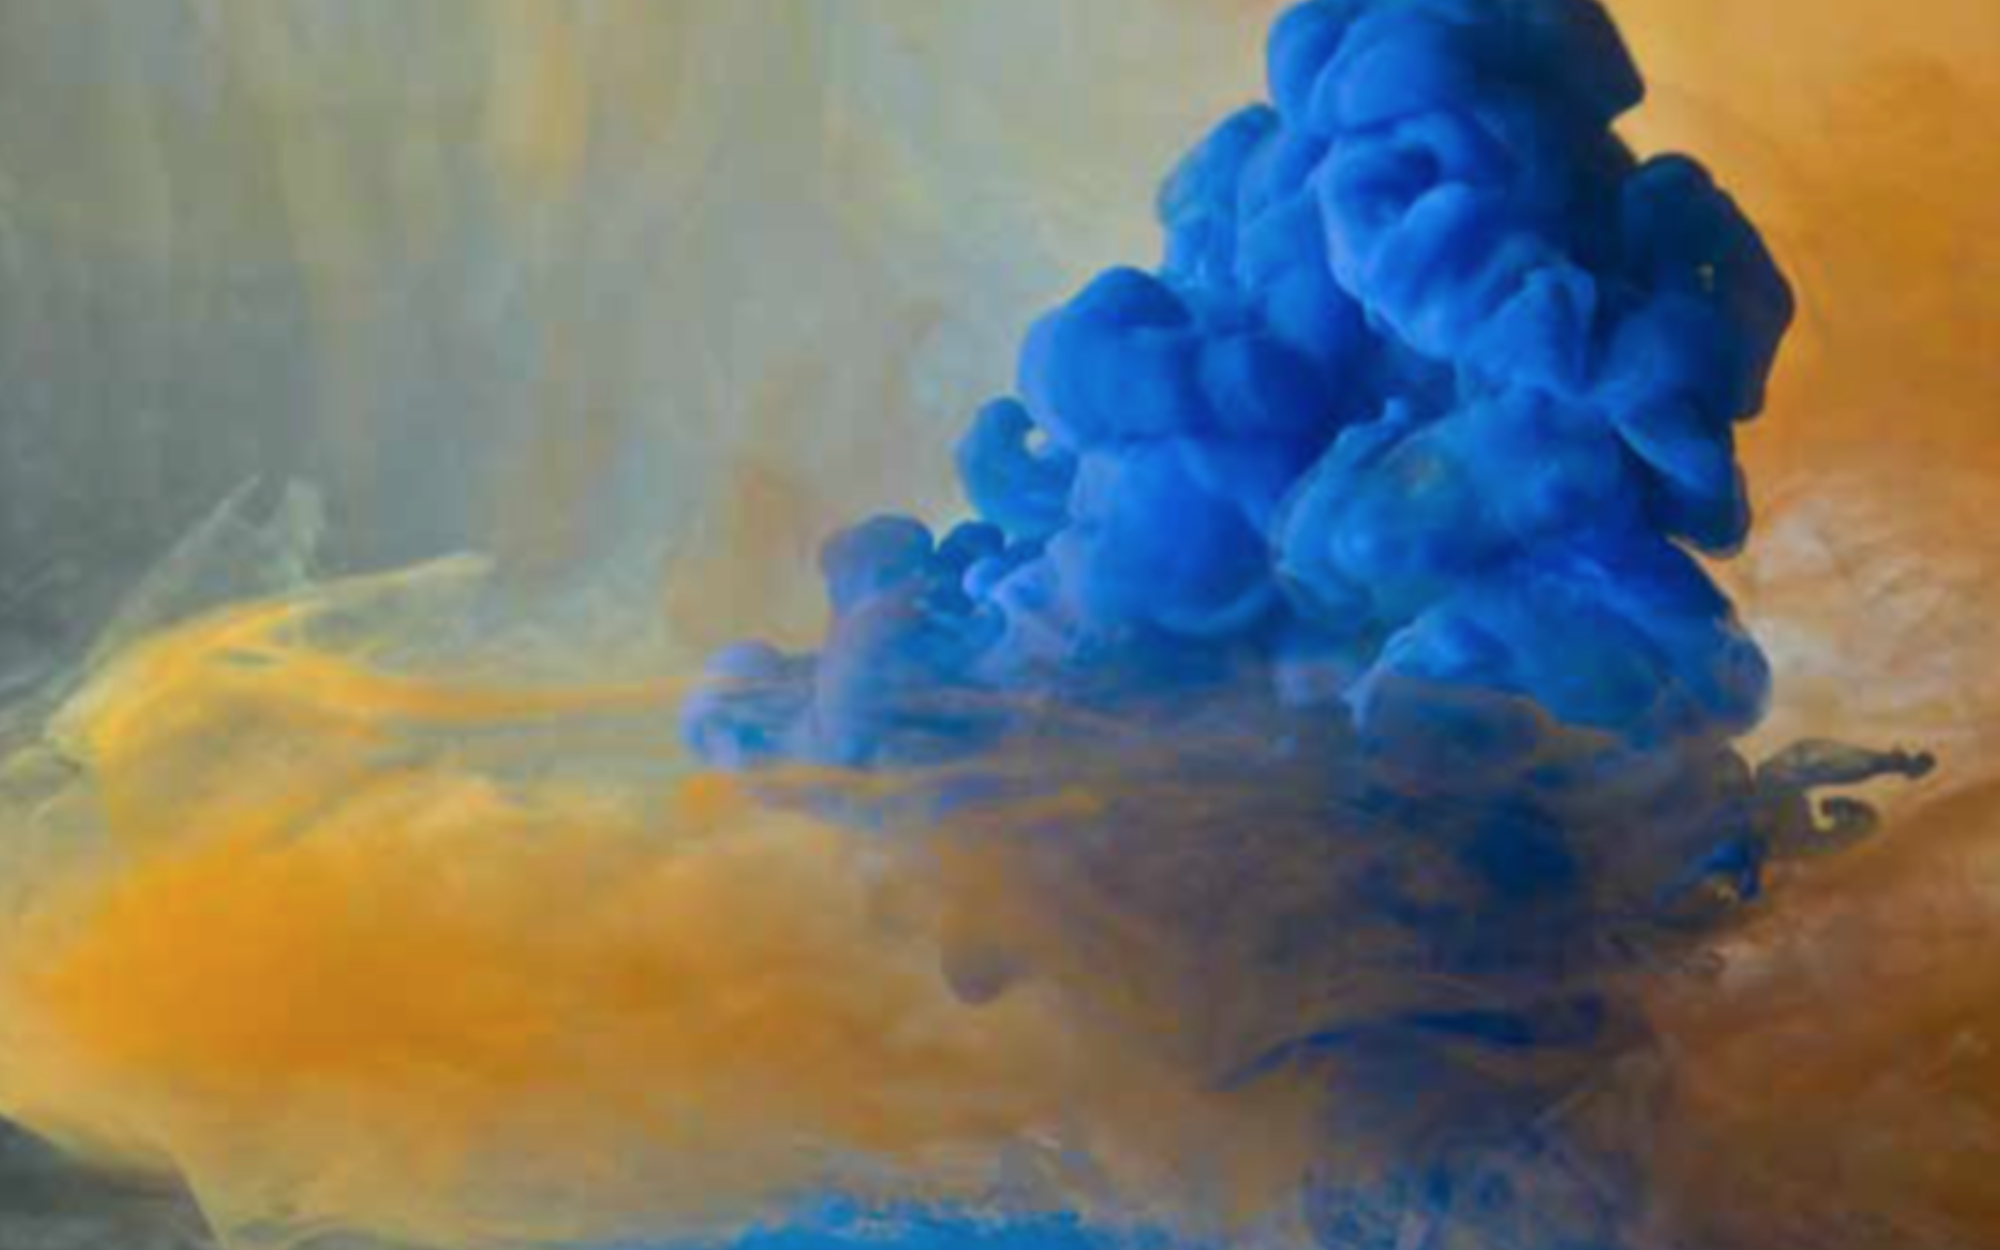 Blue cloud of paint against yellow background